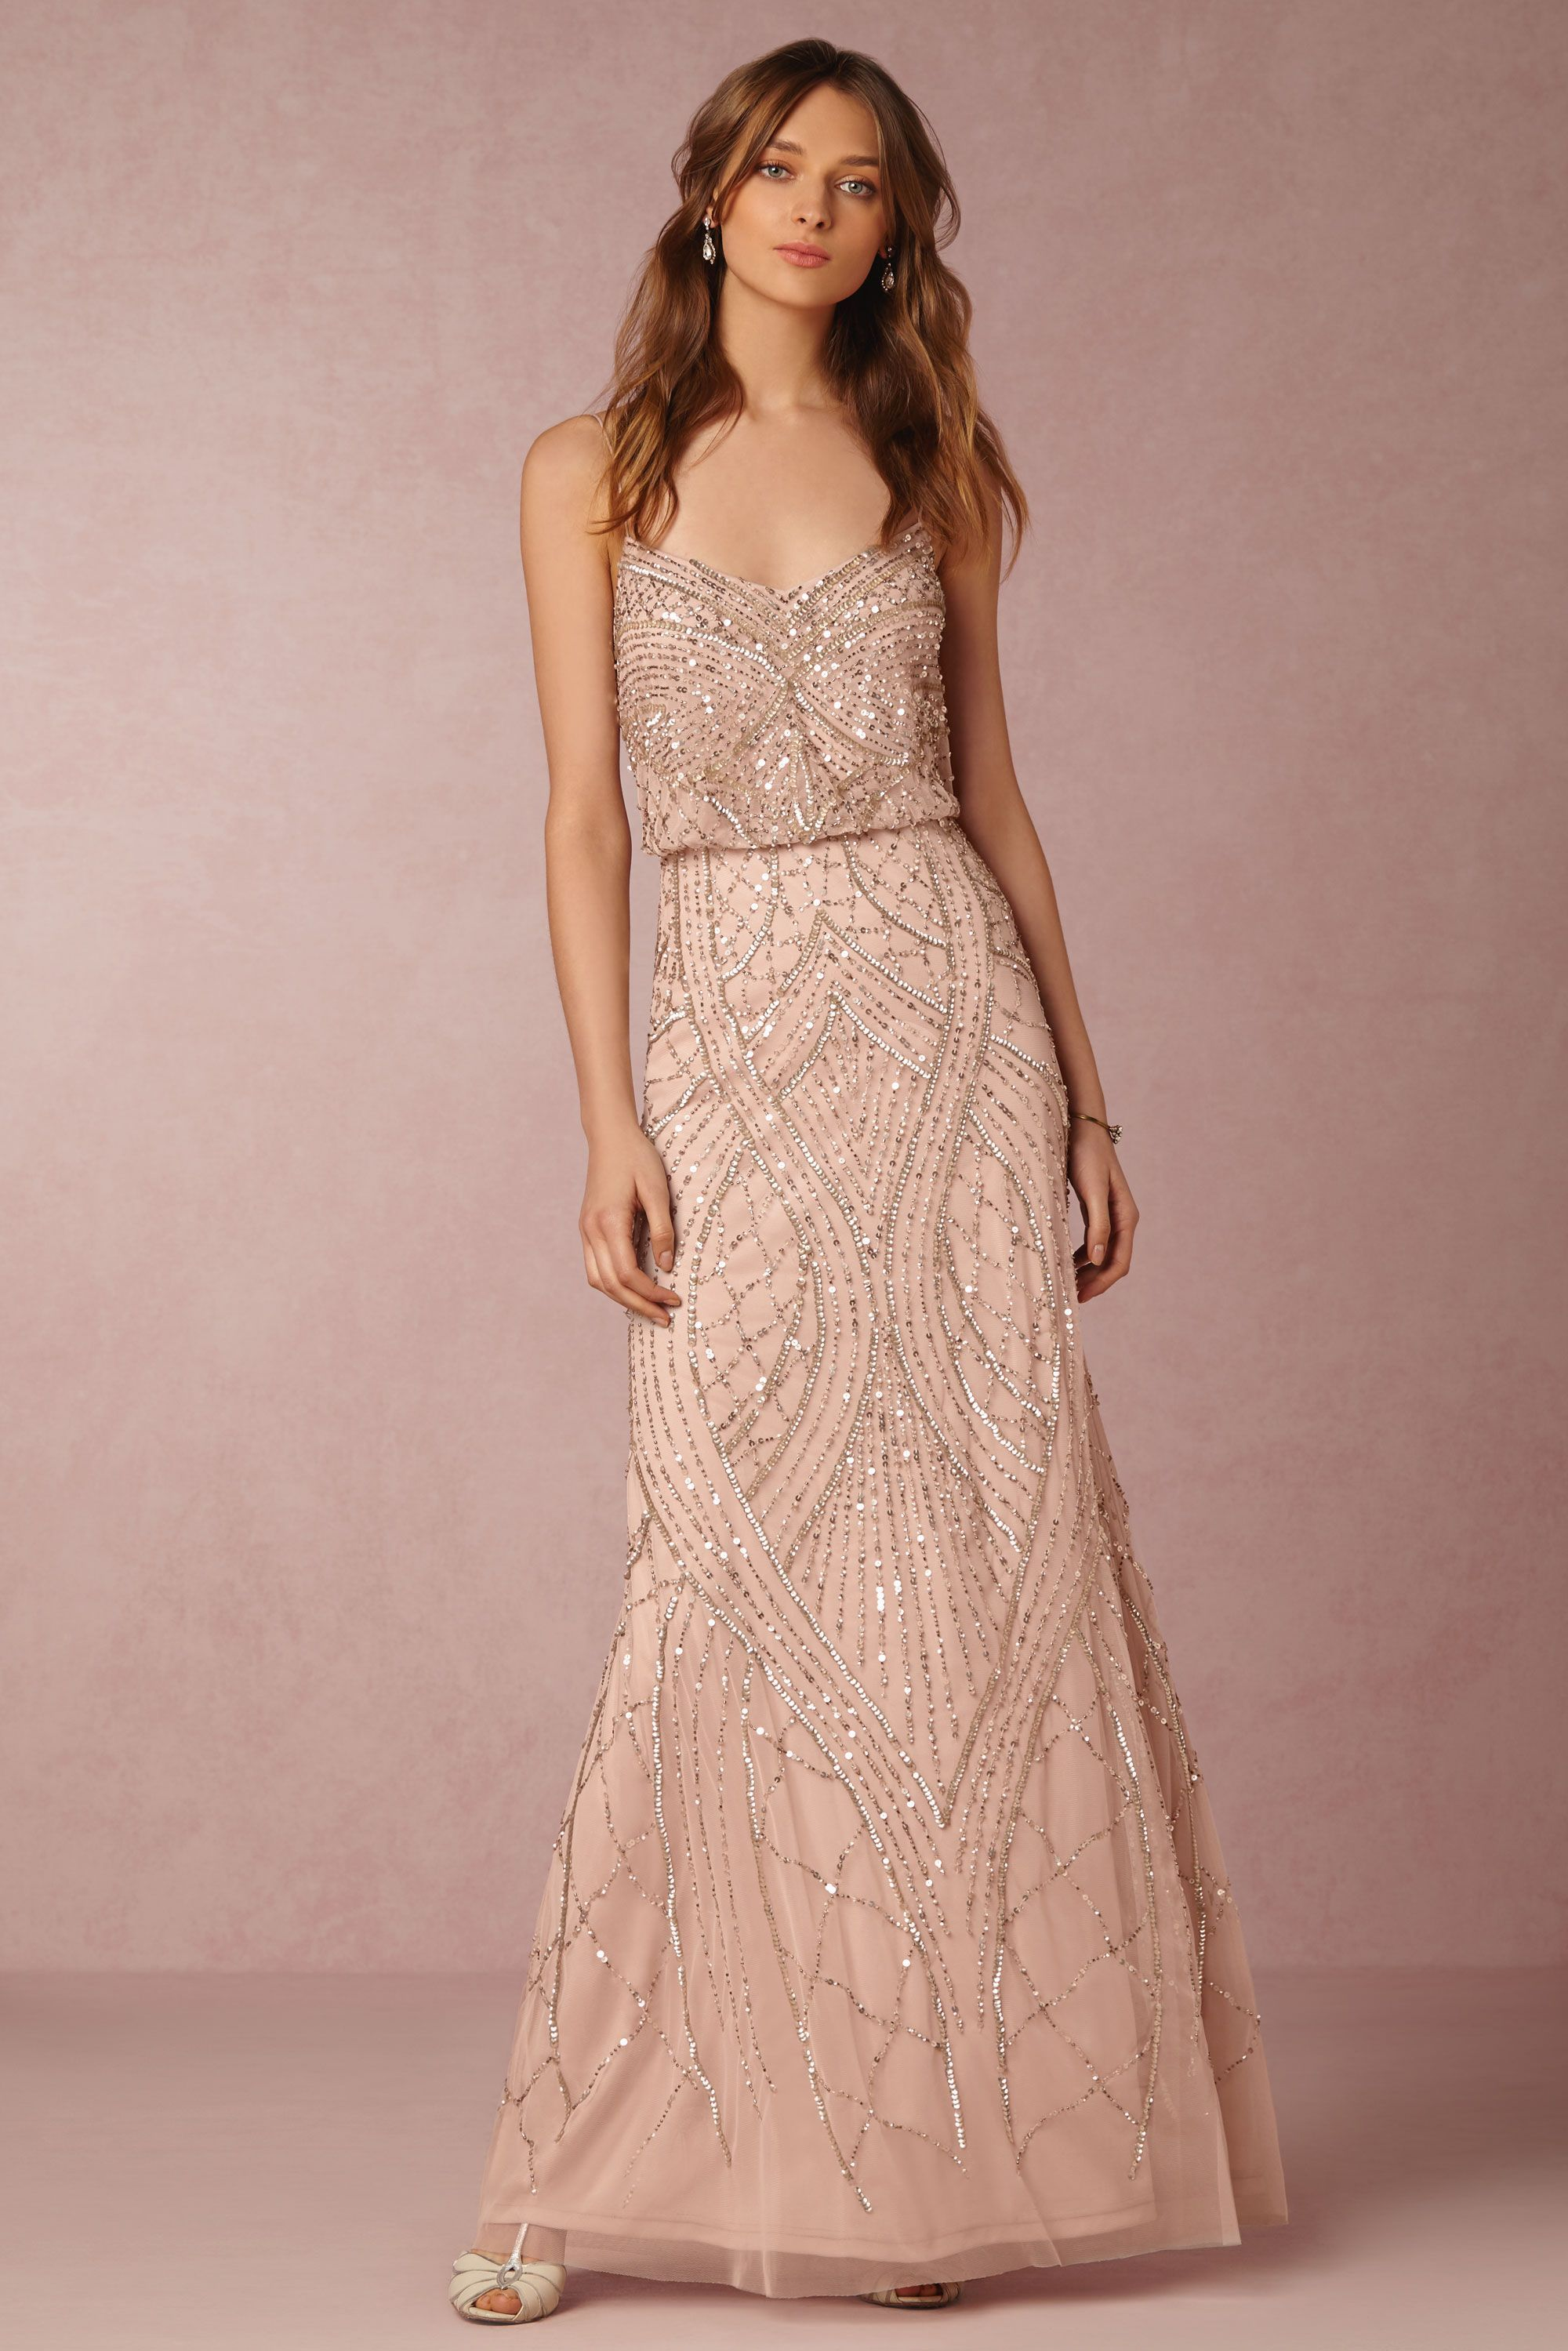 Bridesmaid Dress Possibility - Tobin Dress from @BHLDN | Bodas ...